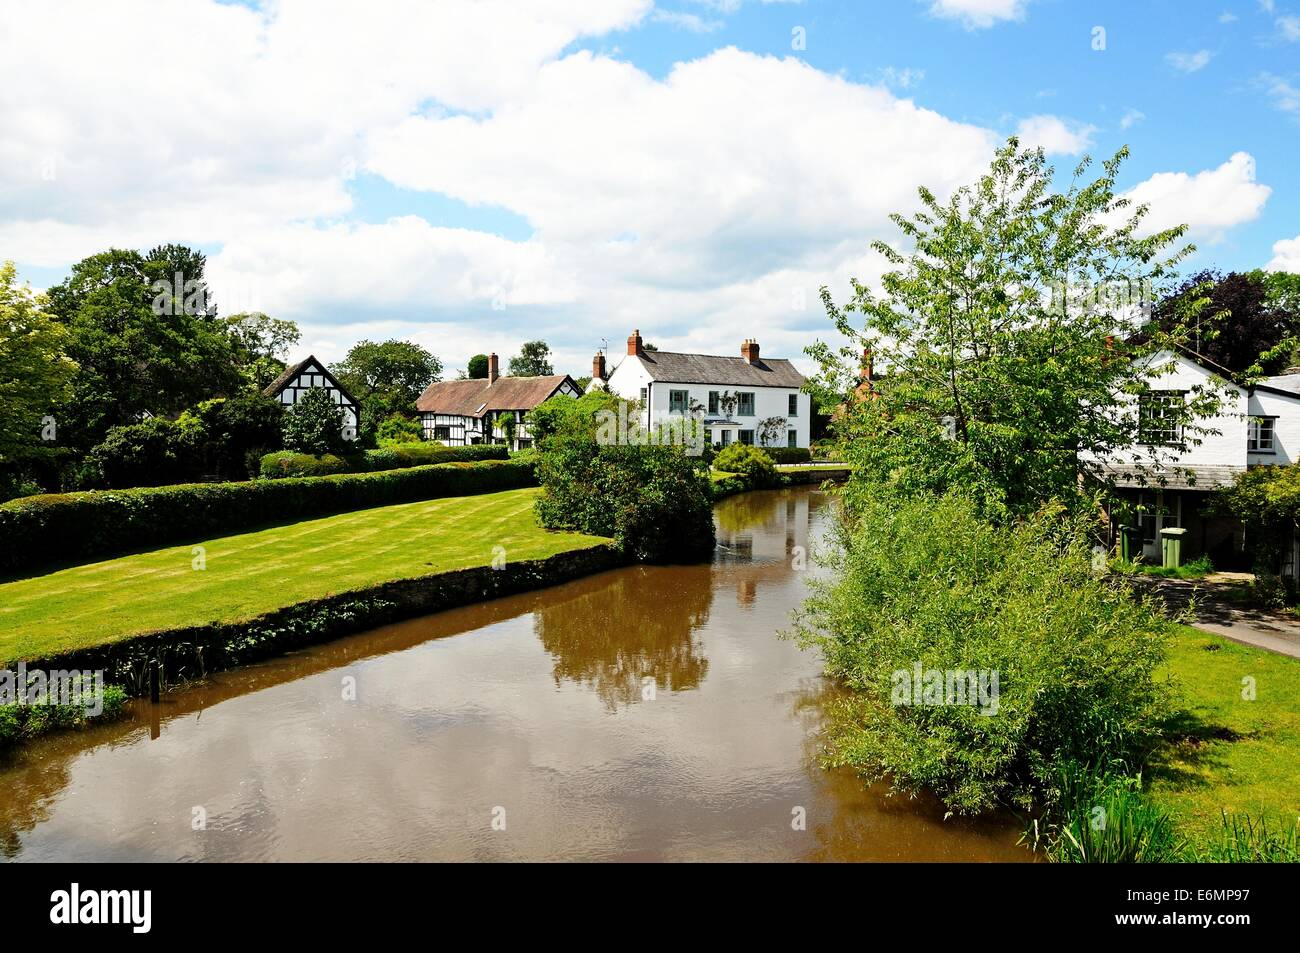 River Arrow with a pretty black and white timbered cottages to the rear, Eardisland, Herefordshire, England, UK, - Stock Image